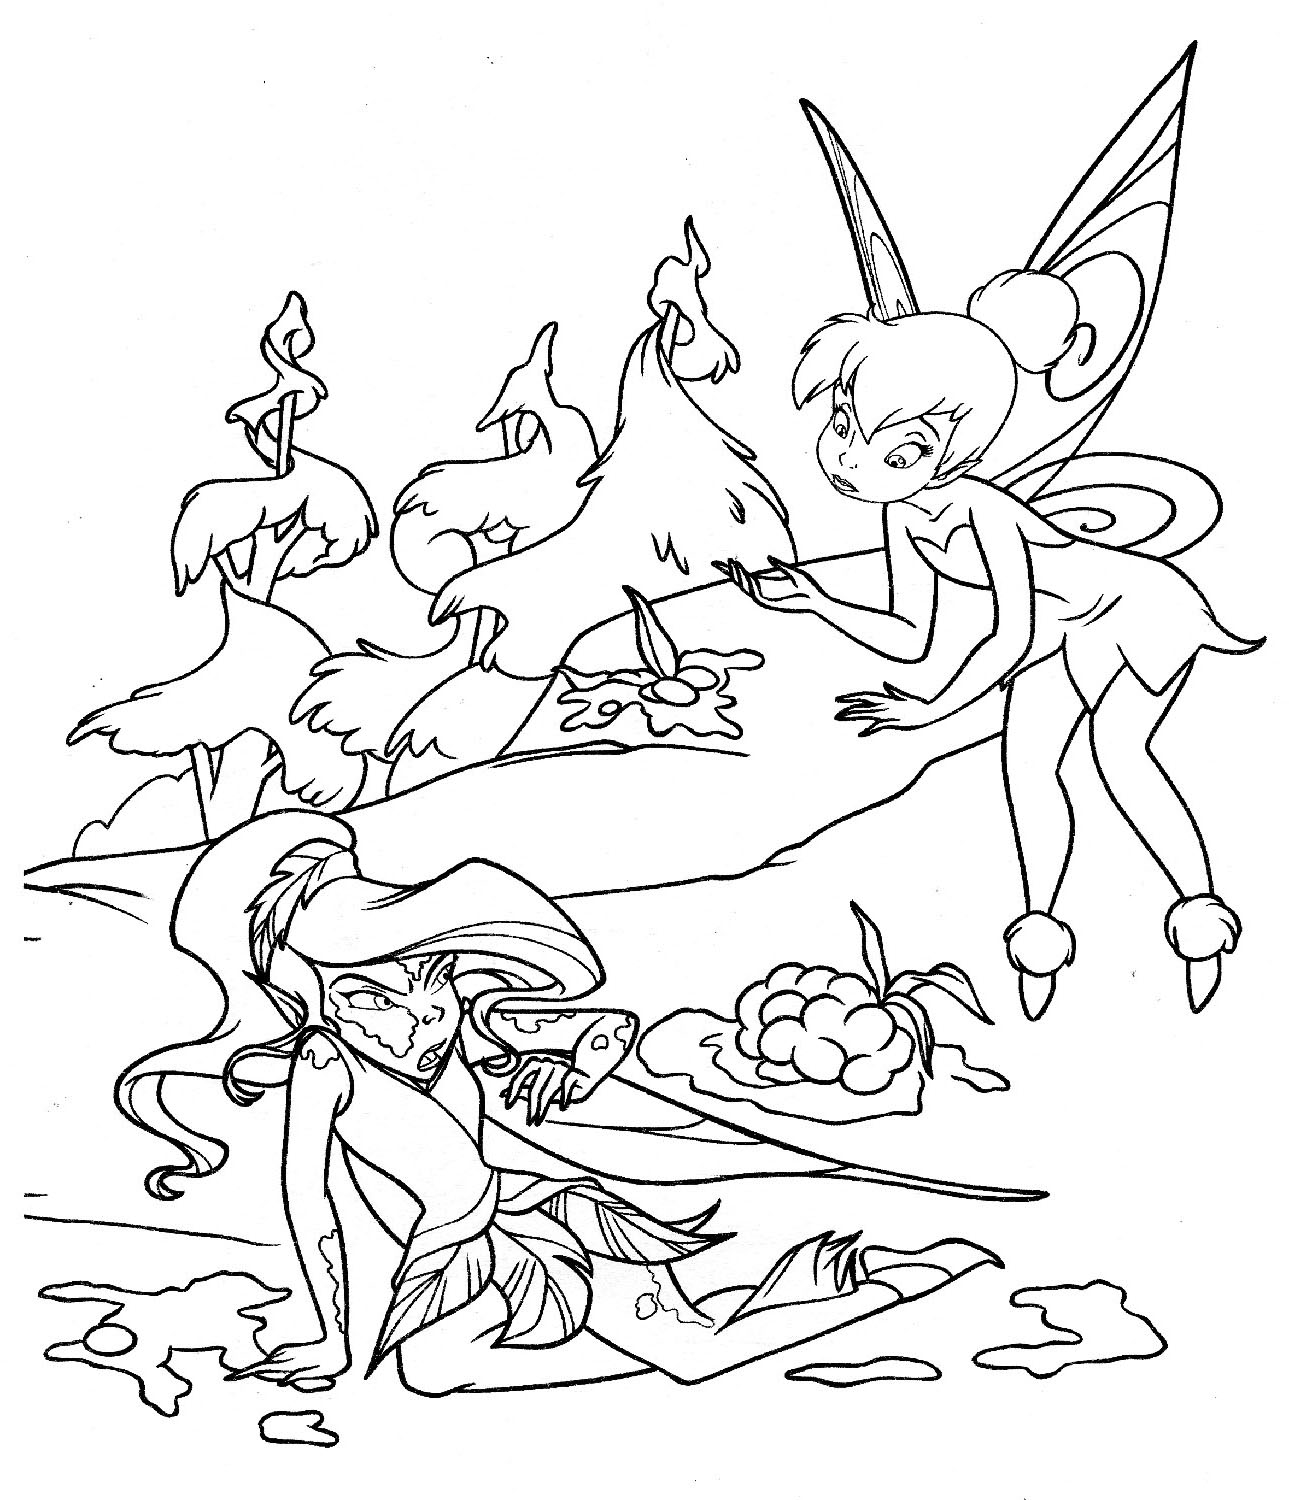 tinkerbell coloring pages free printable 17 free printable tinkerbell coloring pages 1nza coloring printable tinkerbell pages free